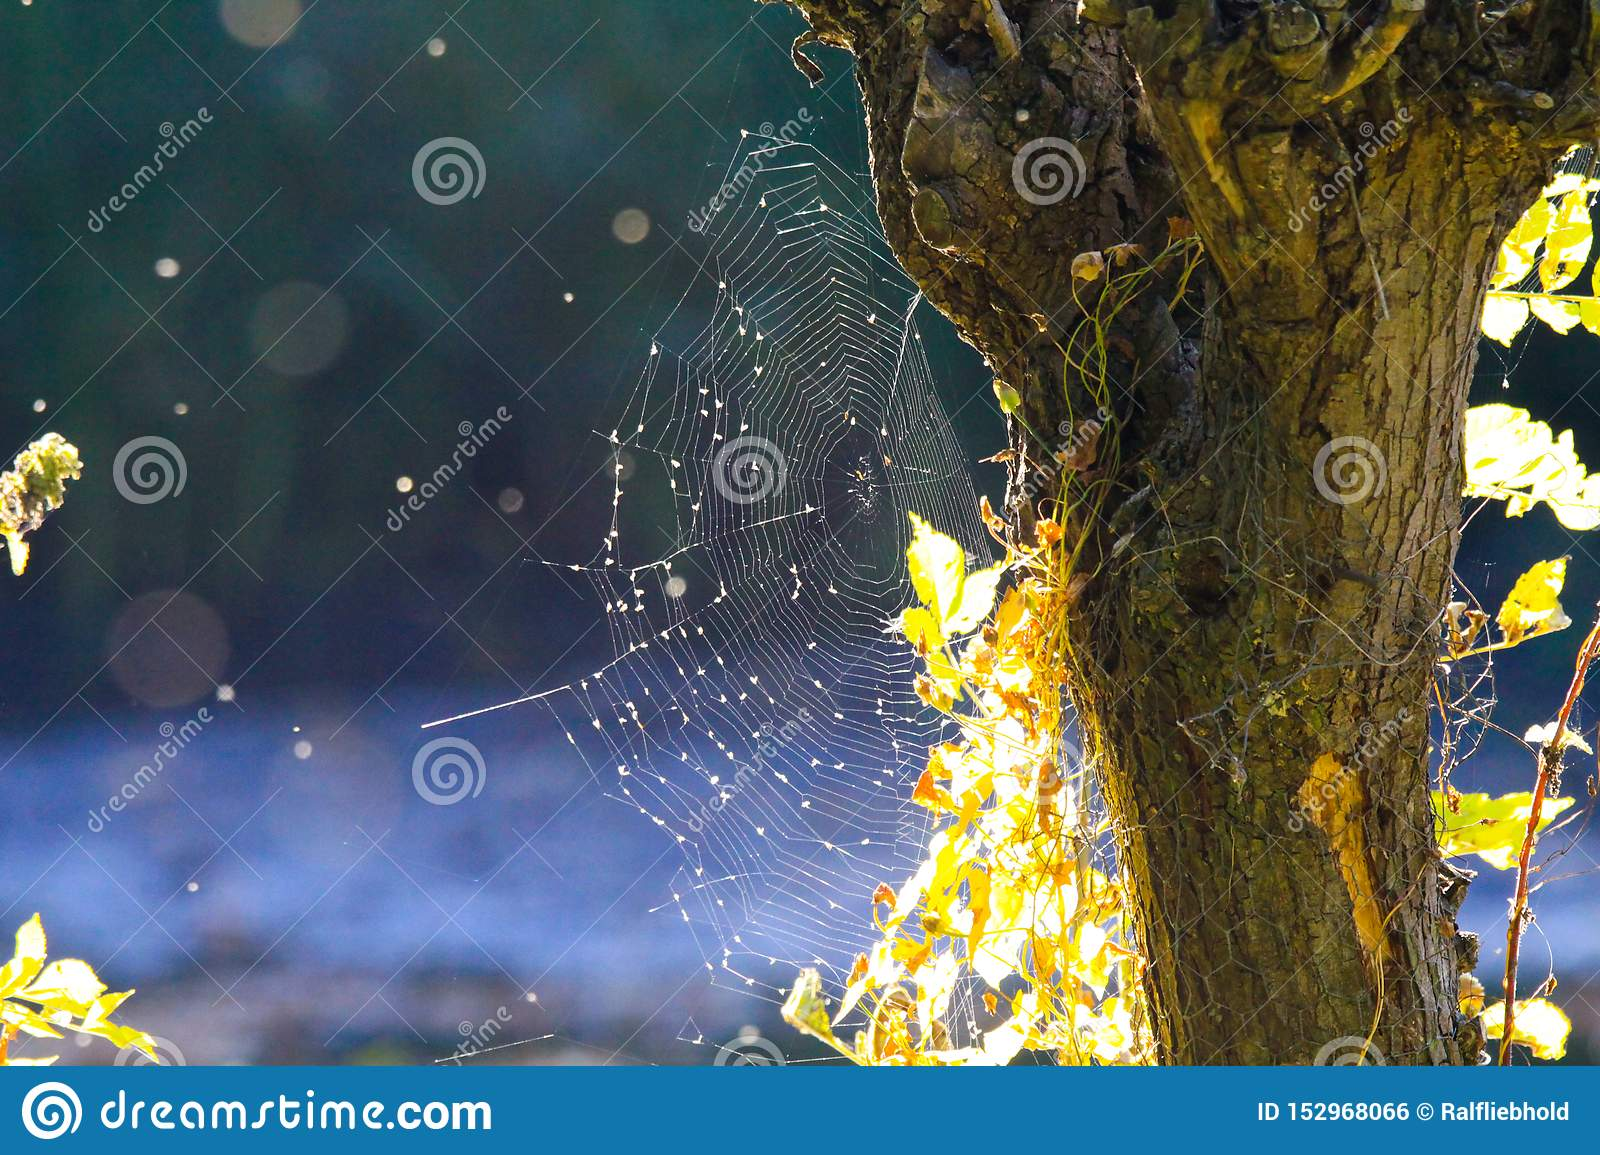 Close up of shining spider web at tree trunk bark with bright glowing leaves in autumn sun blurred blue background near Roermond,